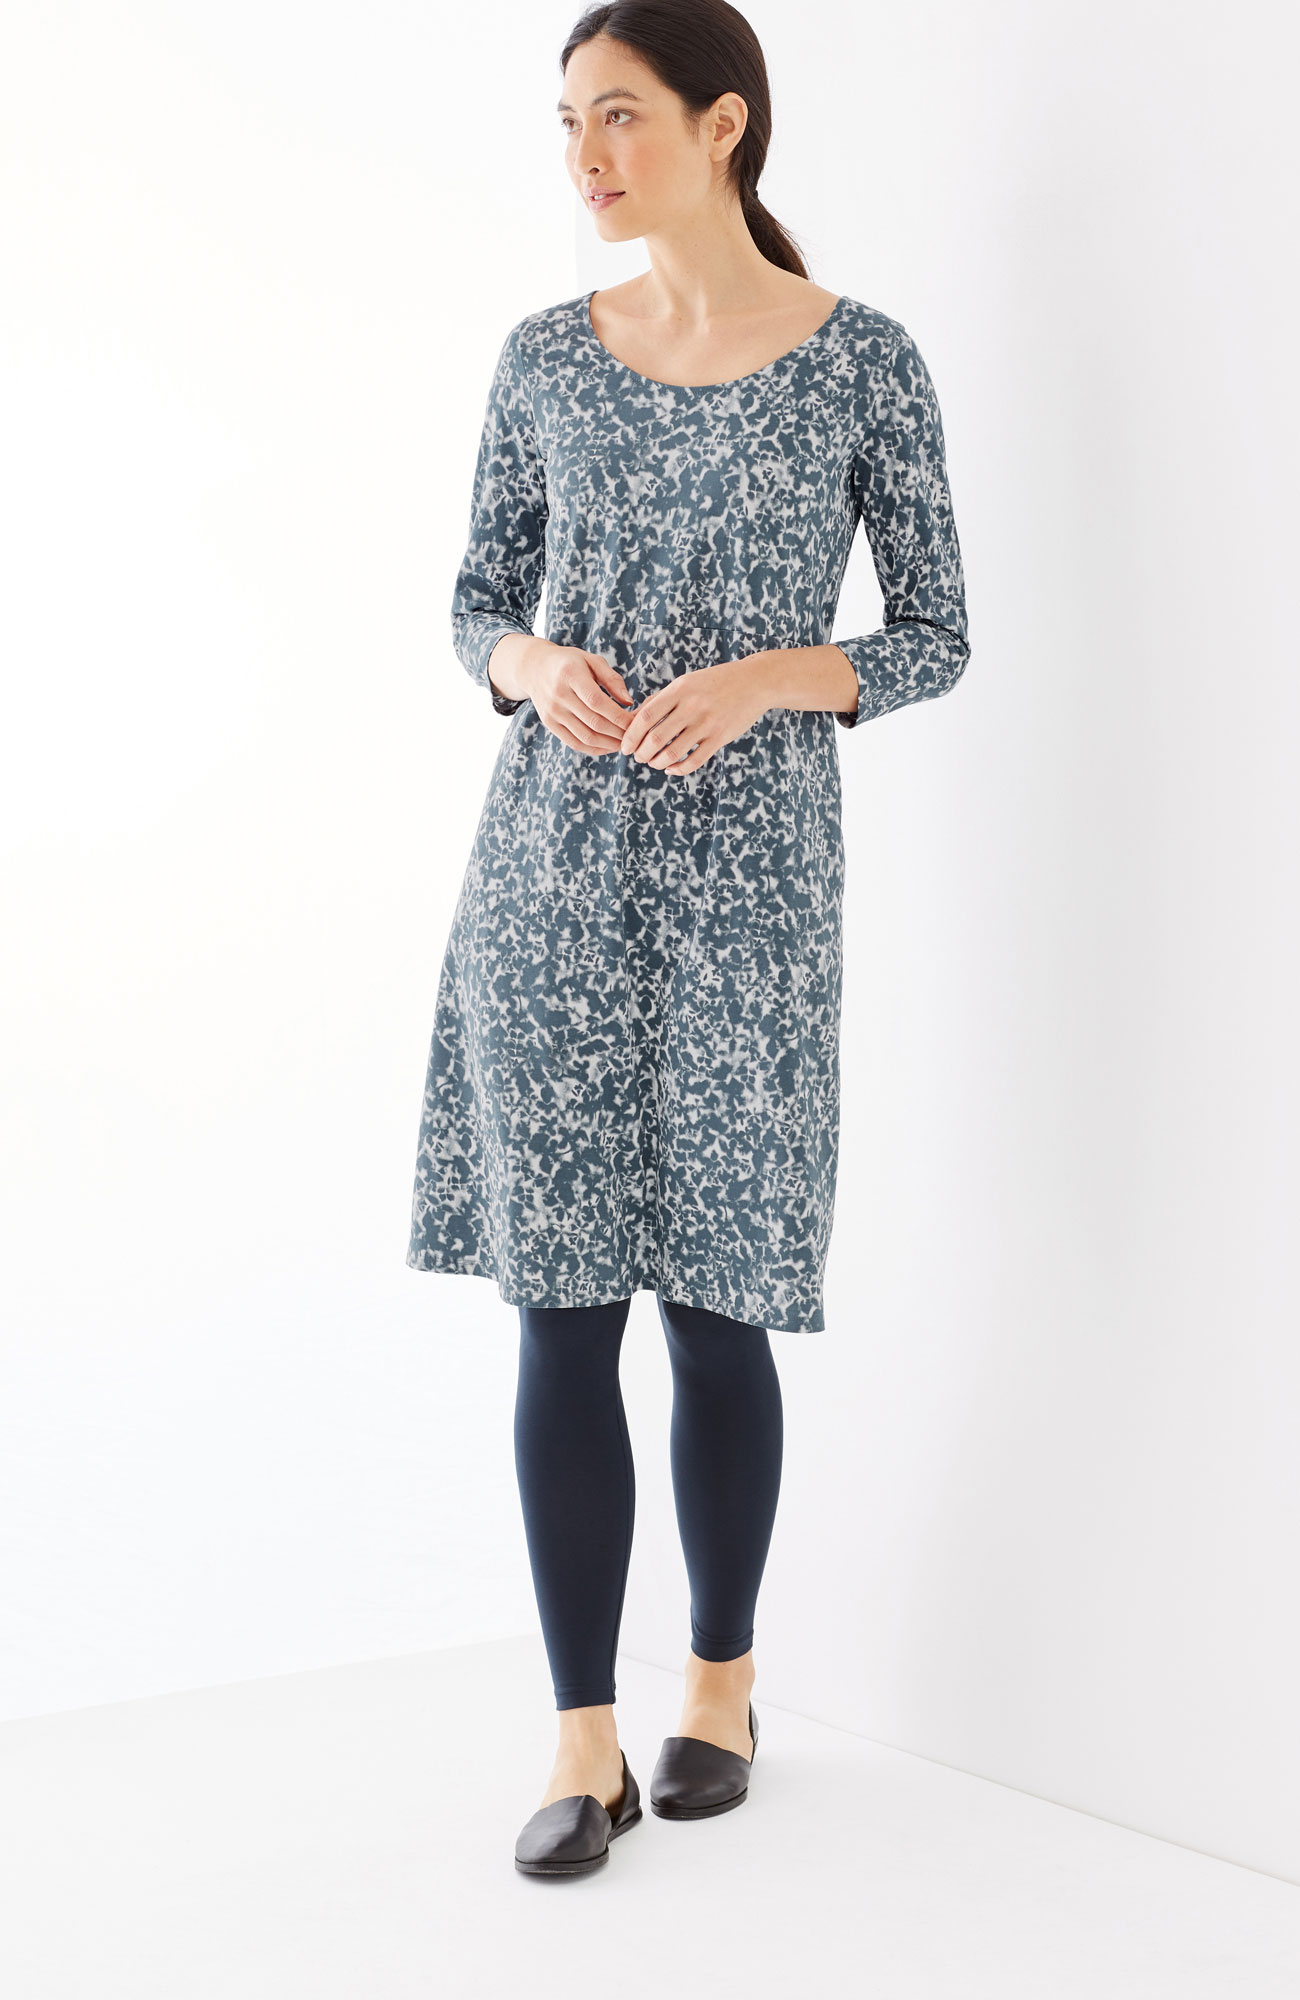 Pure Jill printed A-line knit dress